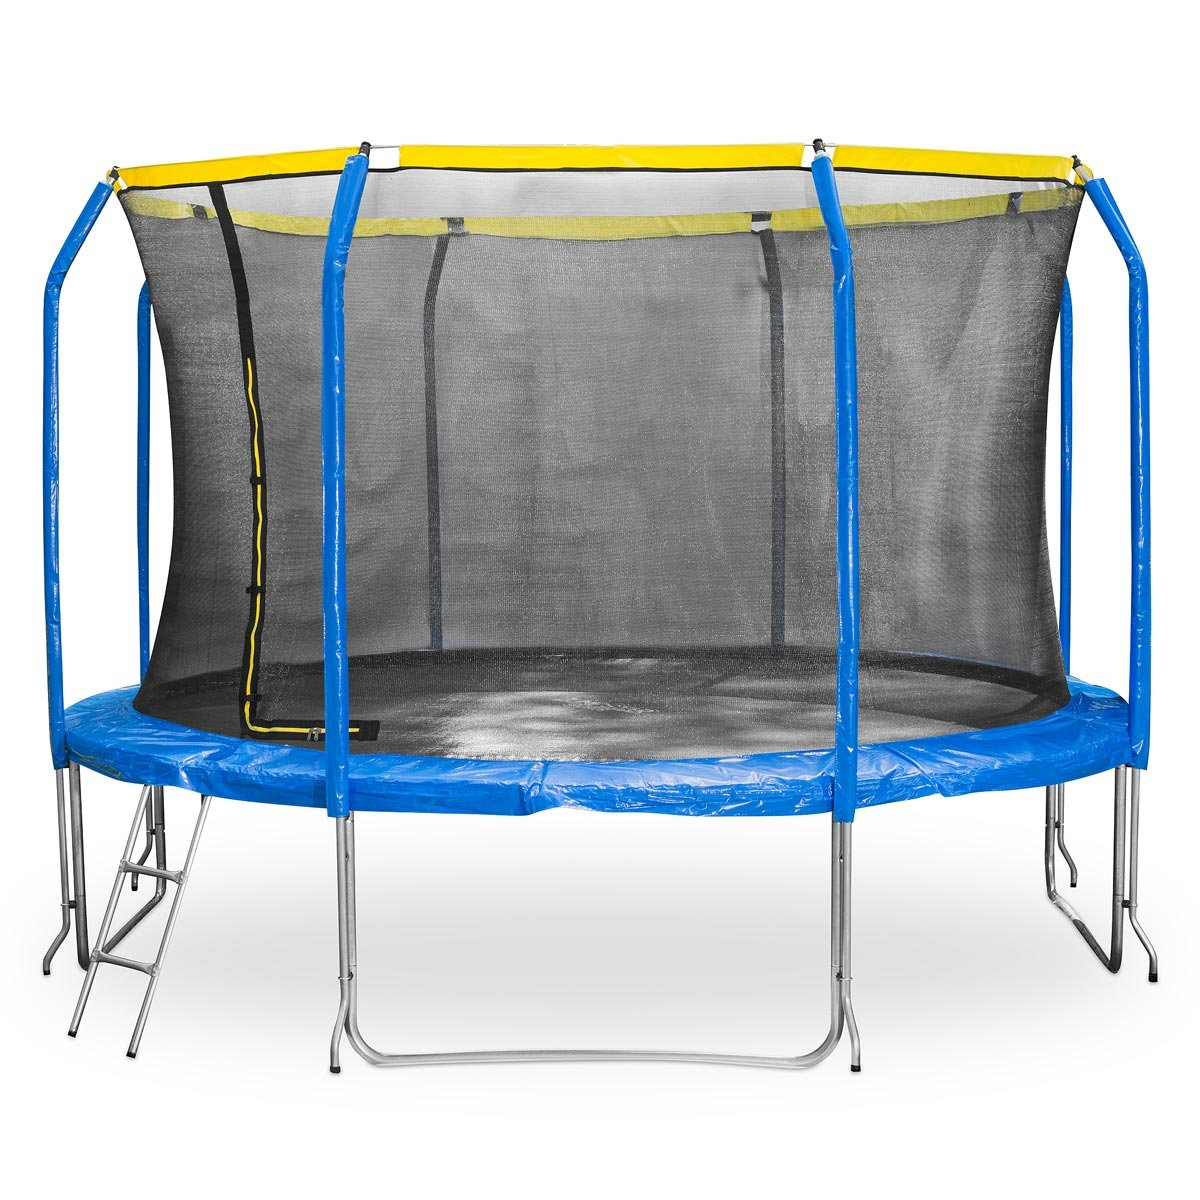 JumpStar Sports Trampoline & Internal Safety Net Enclosure